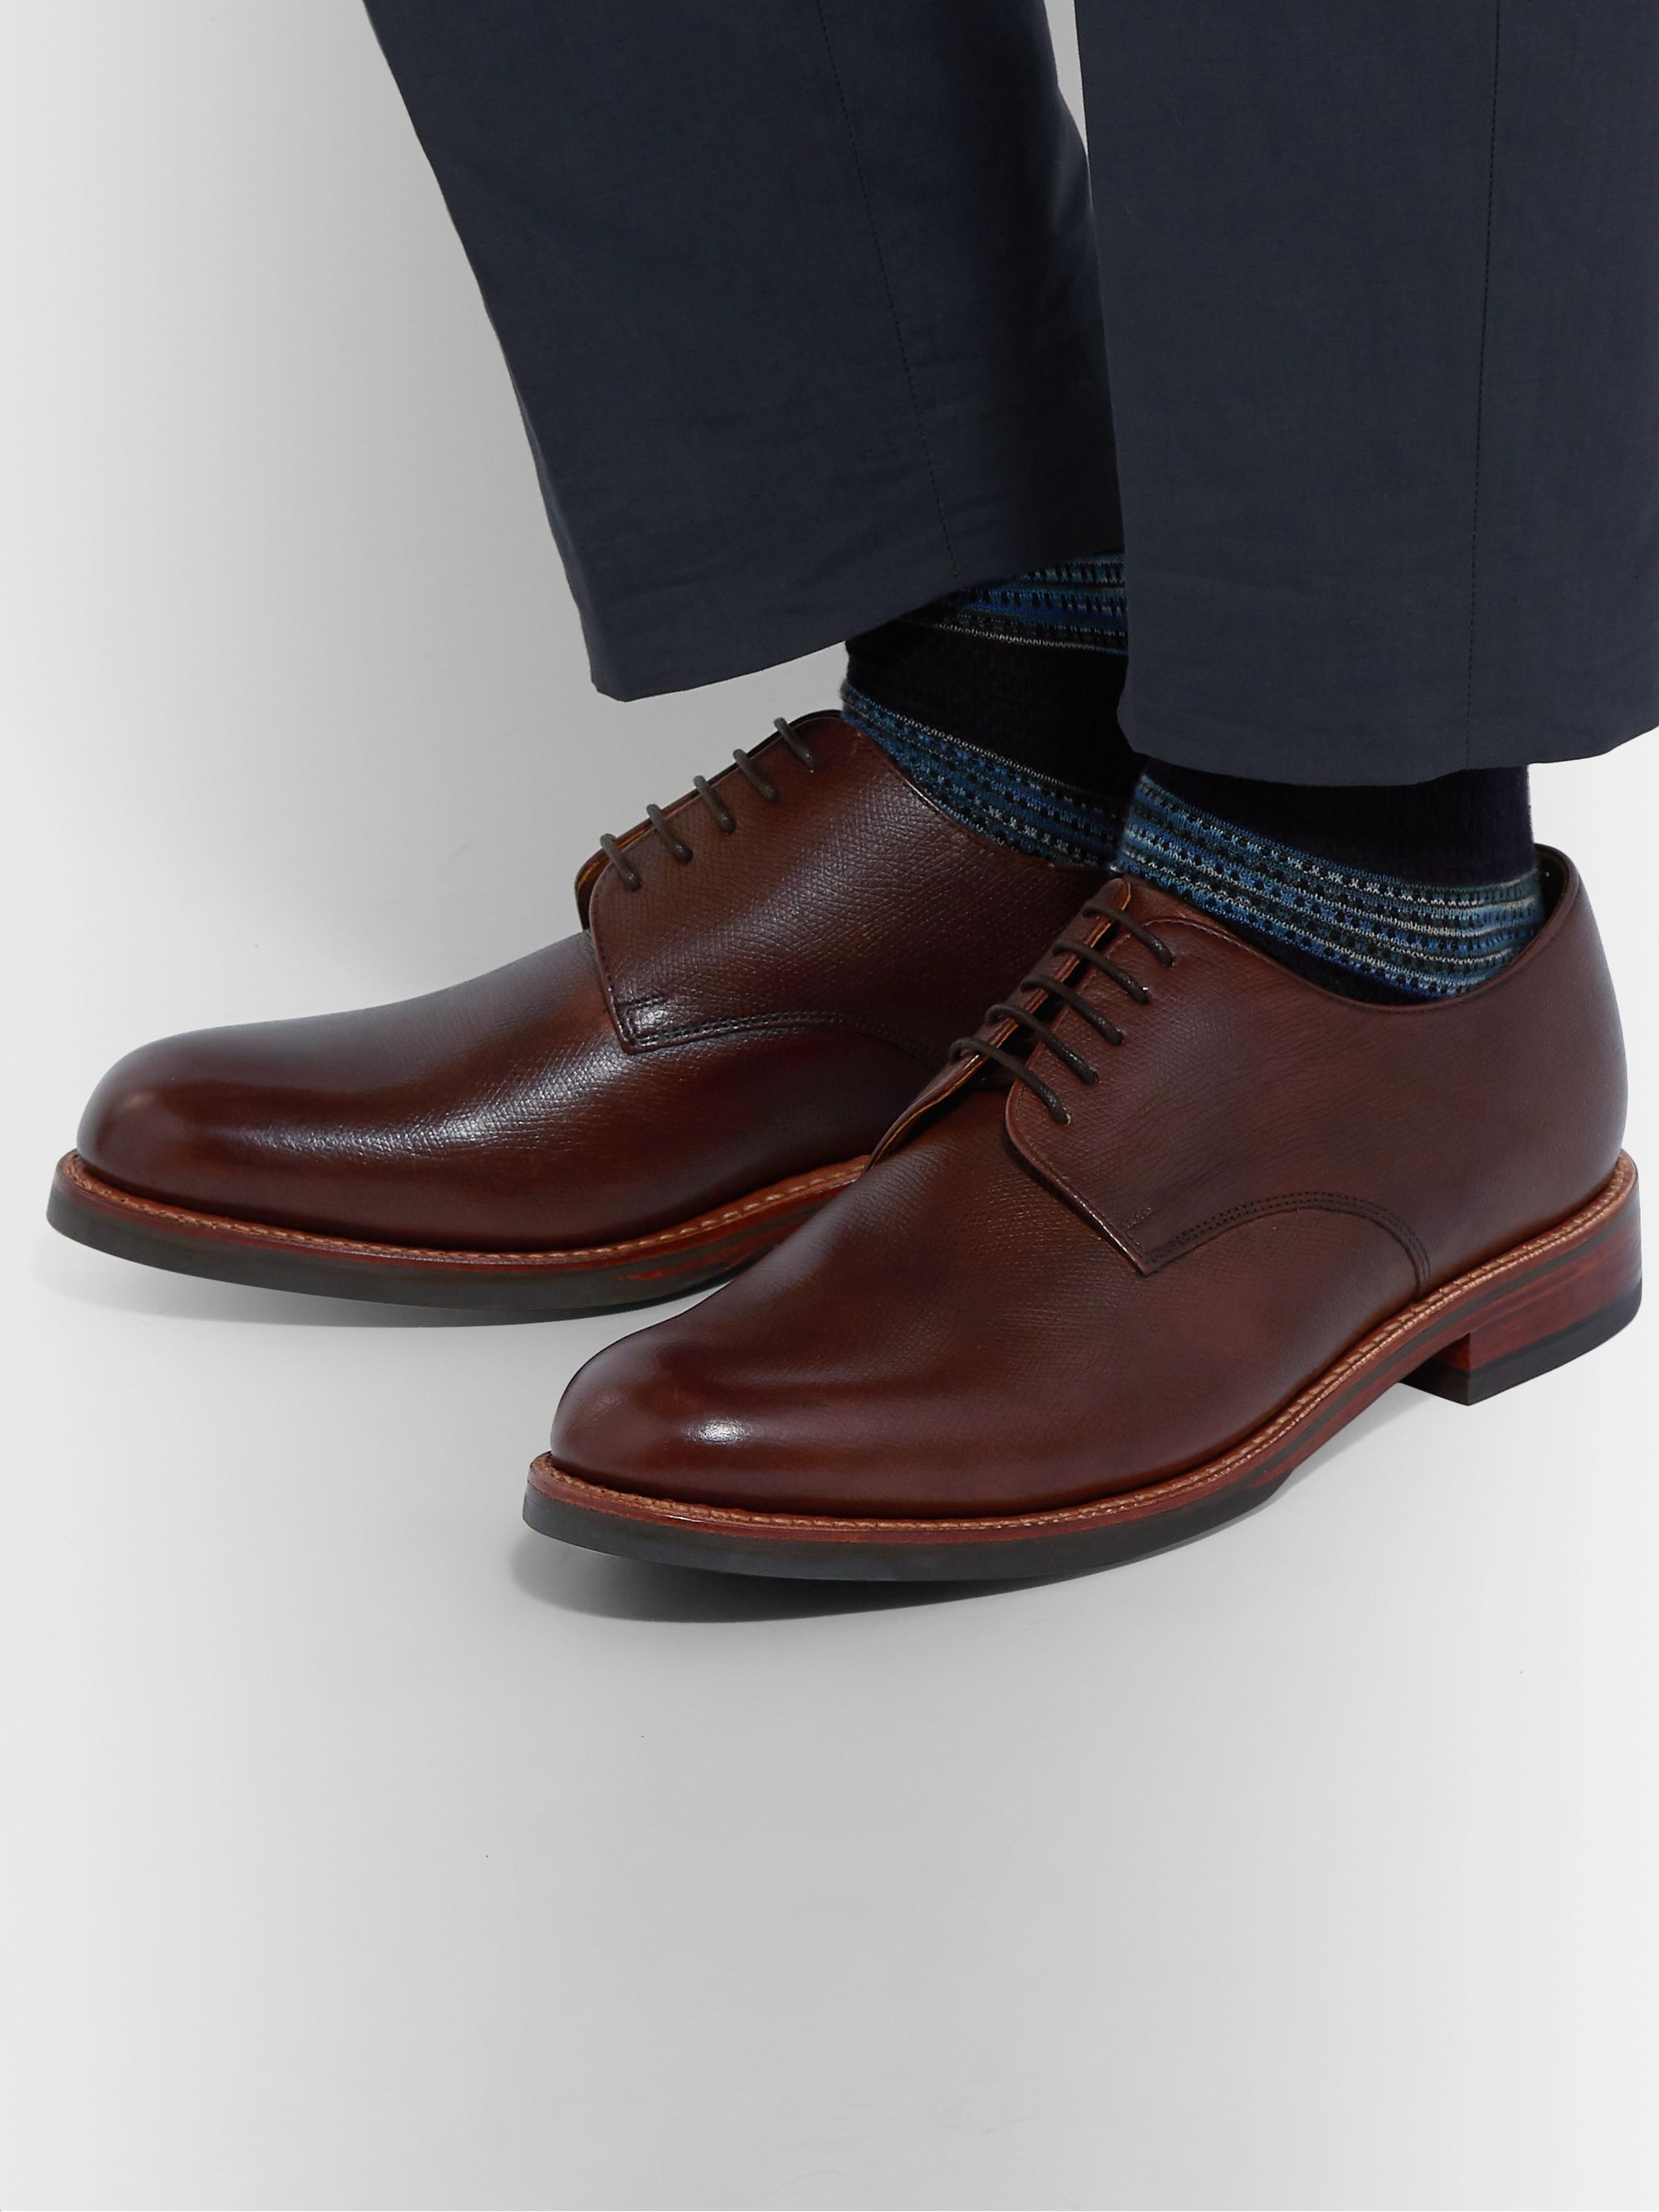 3d2c9d8e5f2 Curt Hand-Painted Full-Grain Leather Derby Shoes